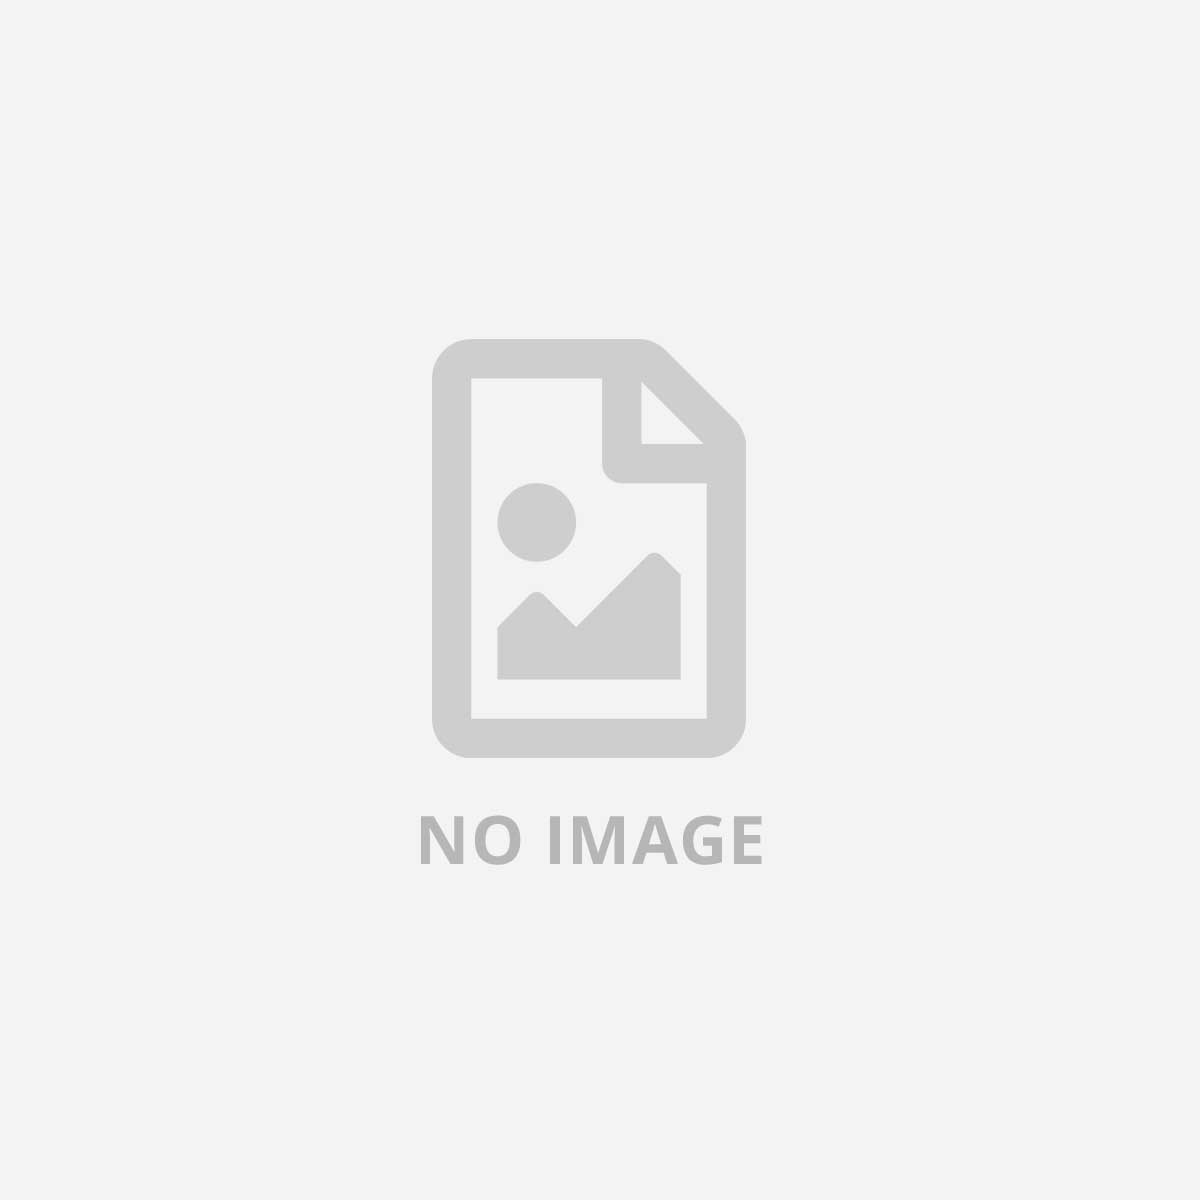 JF SOUND CUFIT HYUNDAI TUCSON ANDROID 4CORE